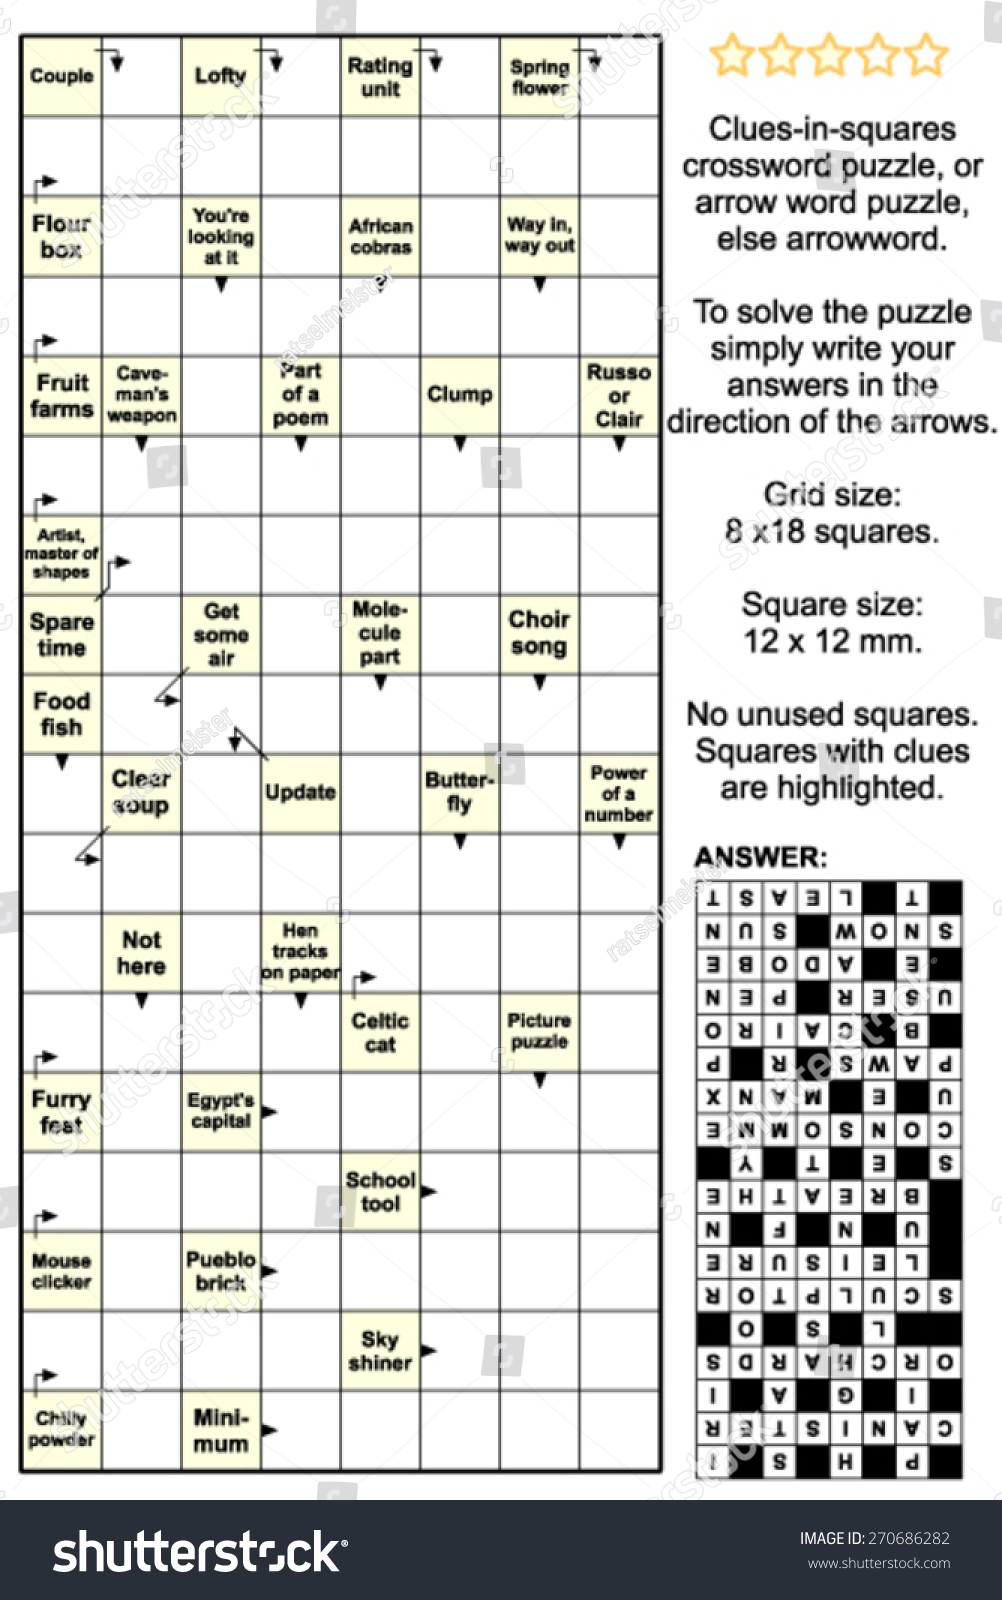 Clues In Squares Crossword Puzzle Or Stock Photo 270686282